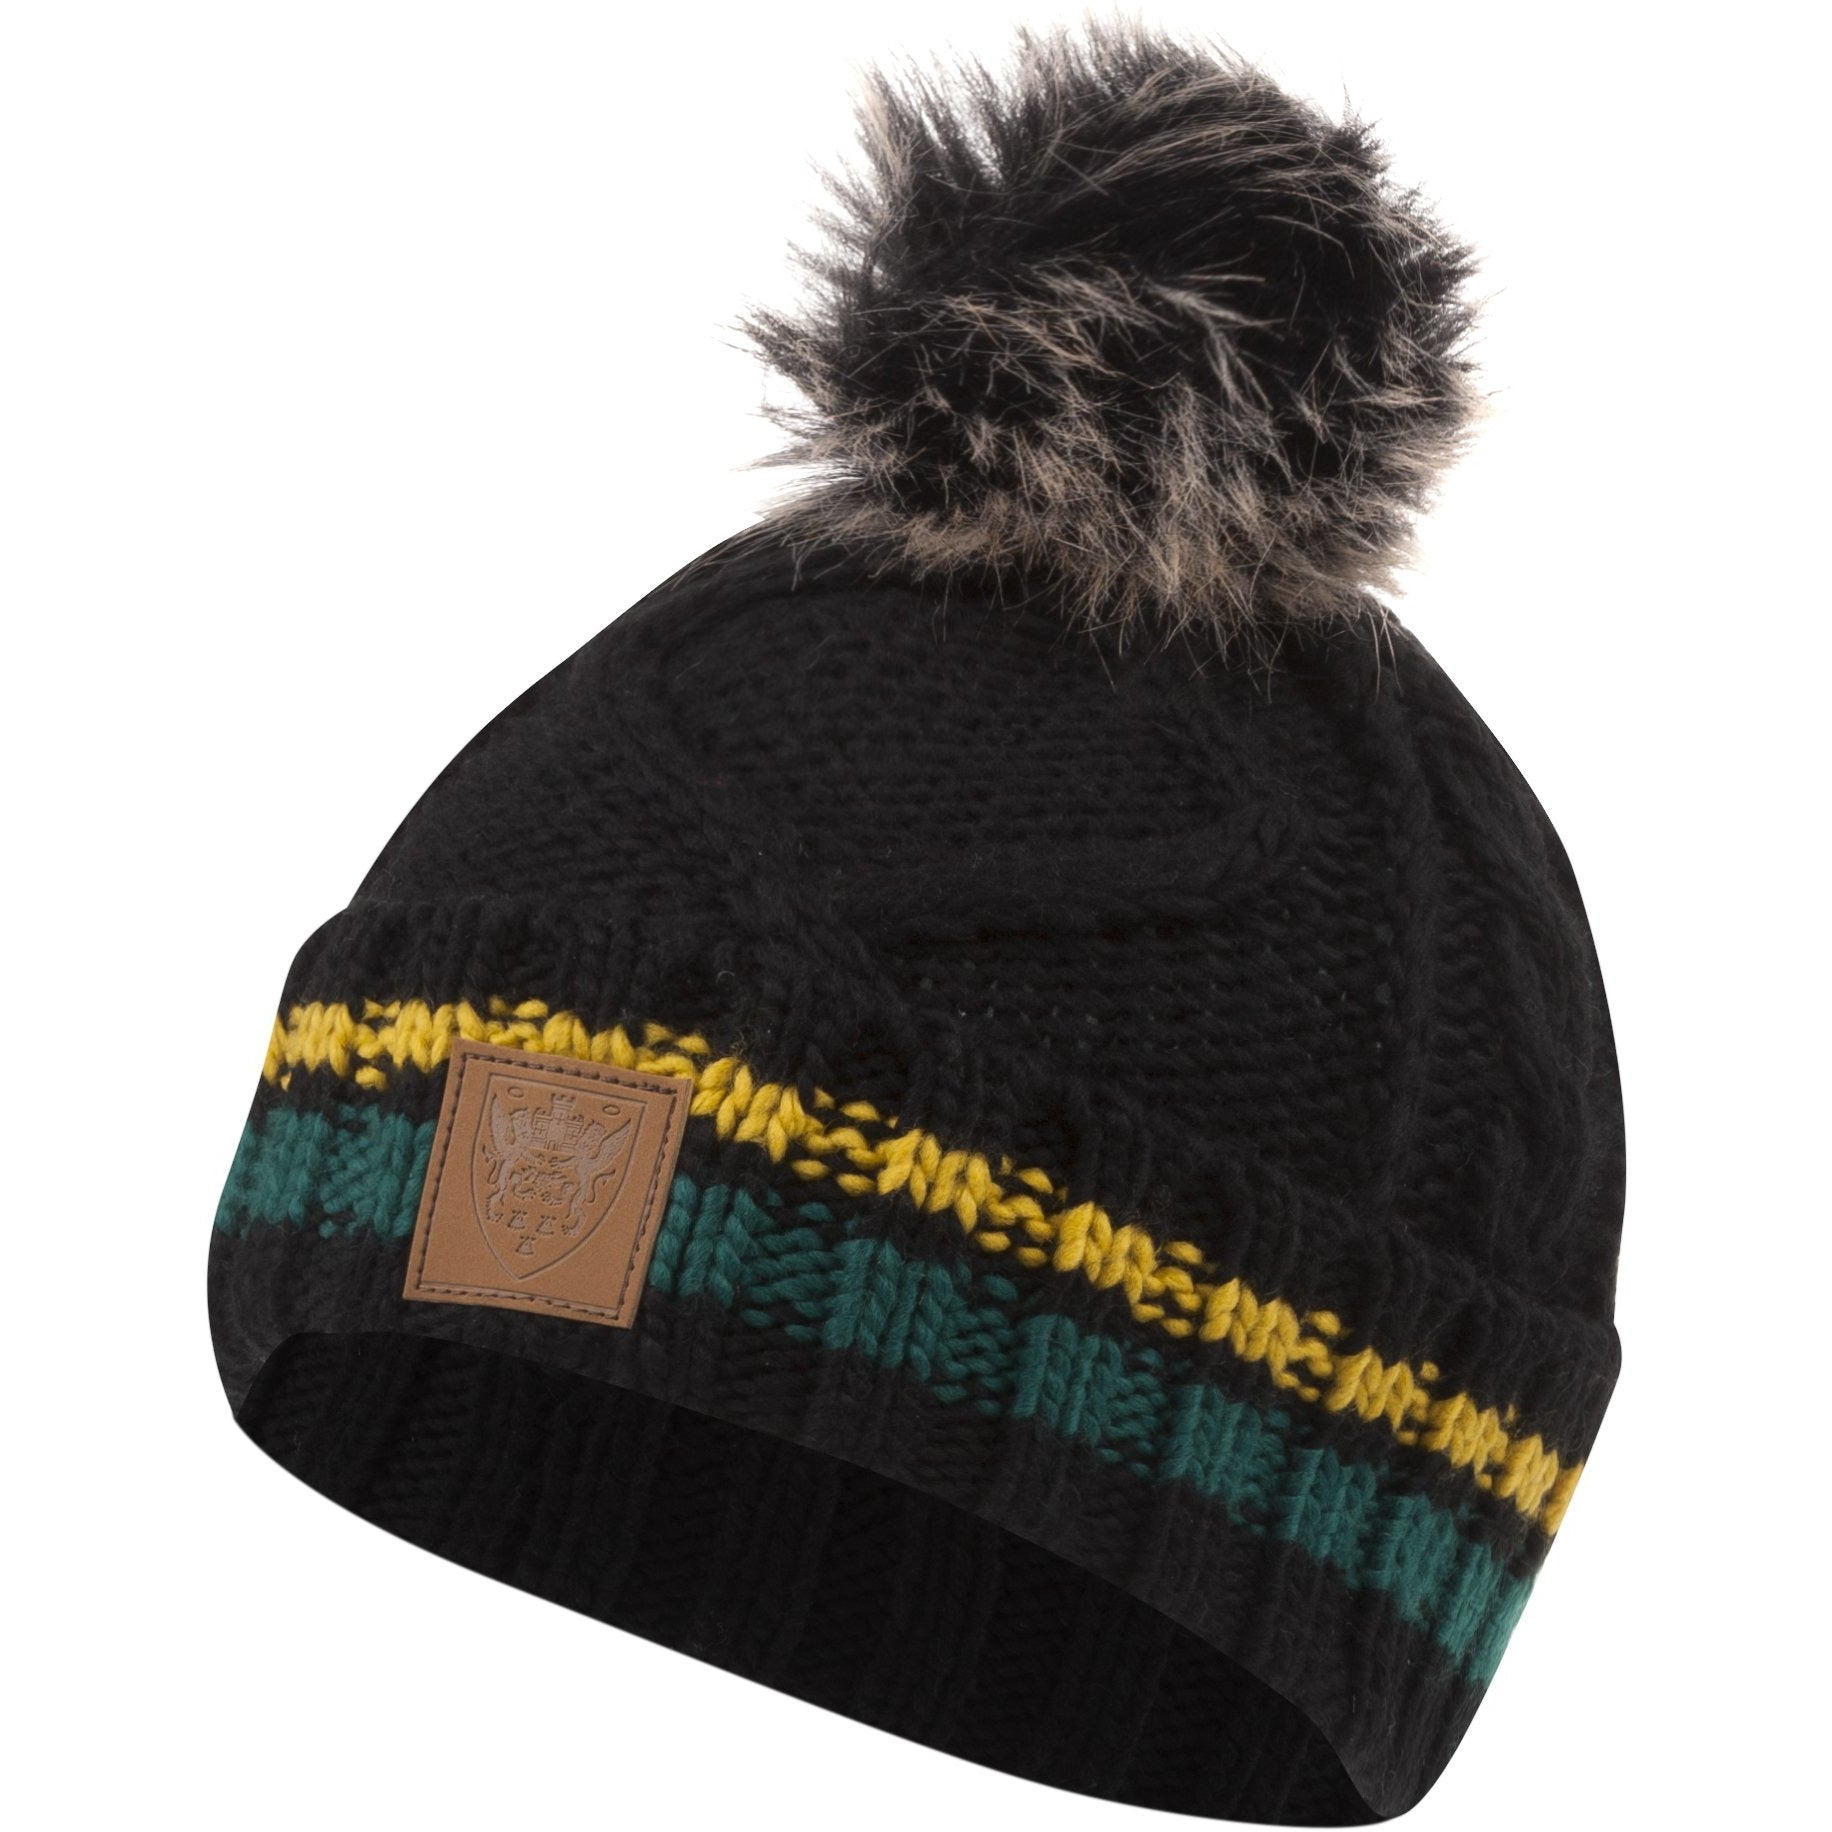 Northampton Saints Ladies Black Pom Pom Beanie